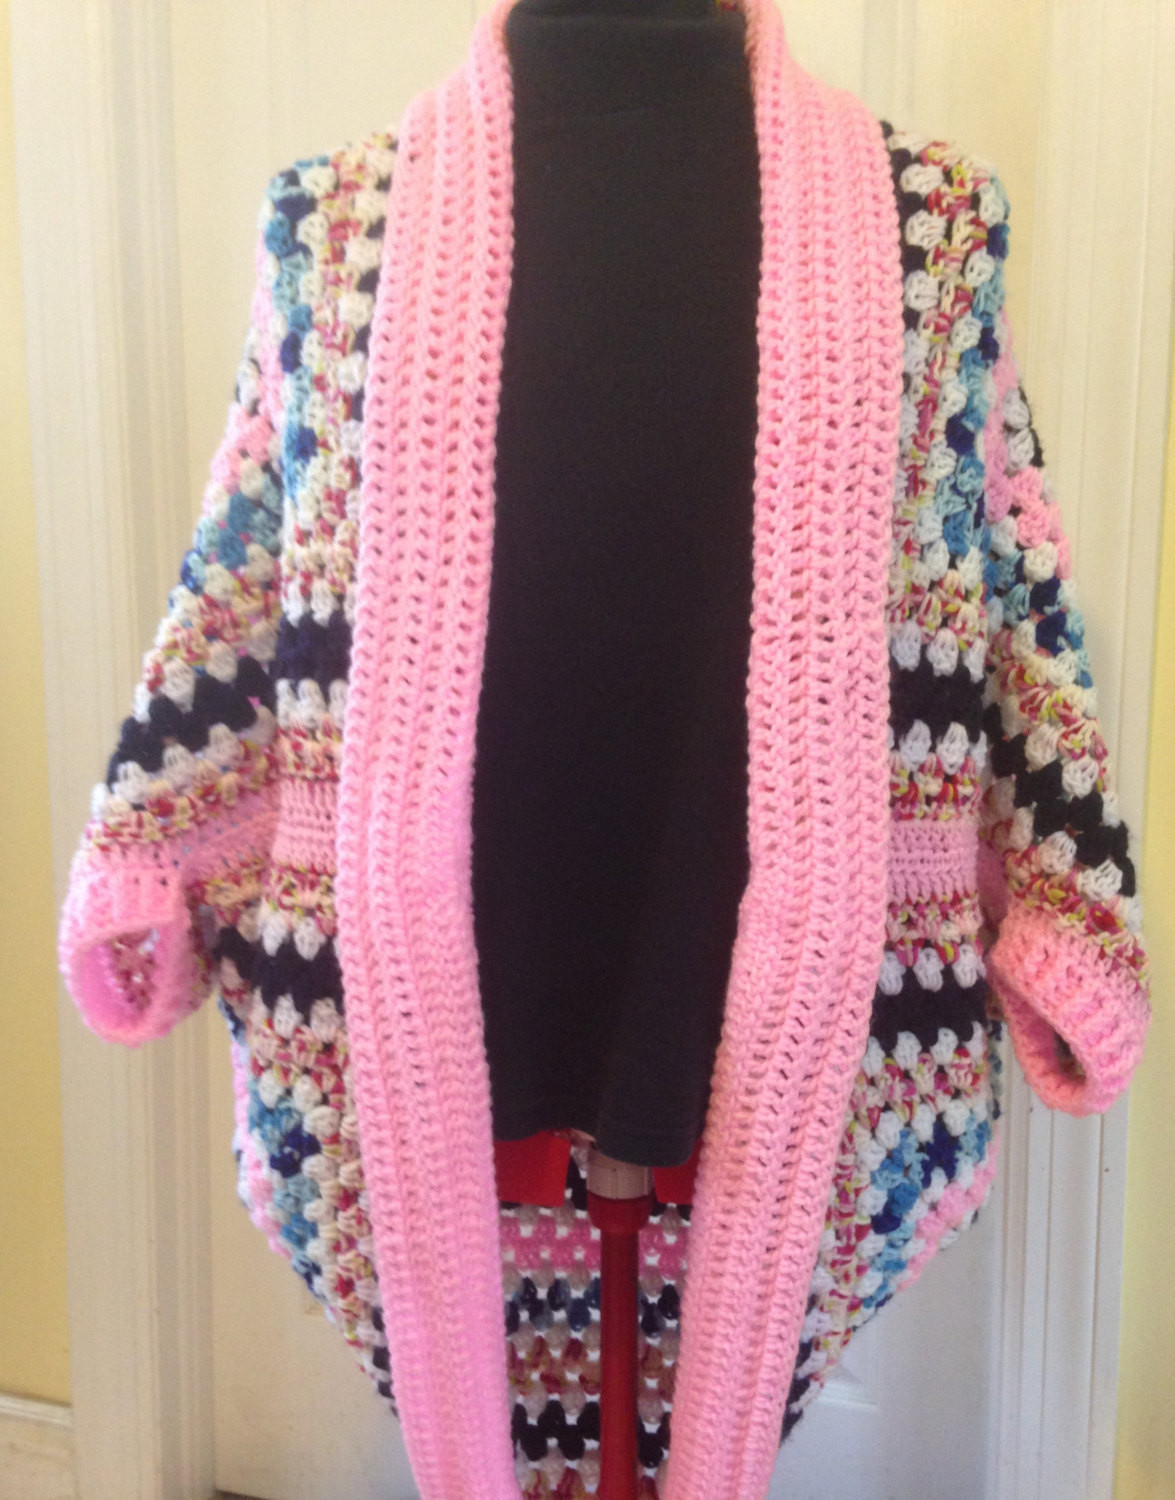 Unique Crochet Granny Square Cocoon Sweater by Handmadebyheikeheart Crochet Cocoon Cardigan Of Charming 45 Pics Crochet Cocoon Cardigan